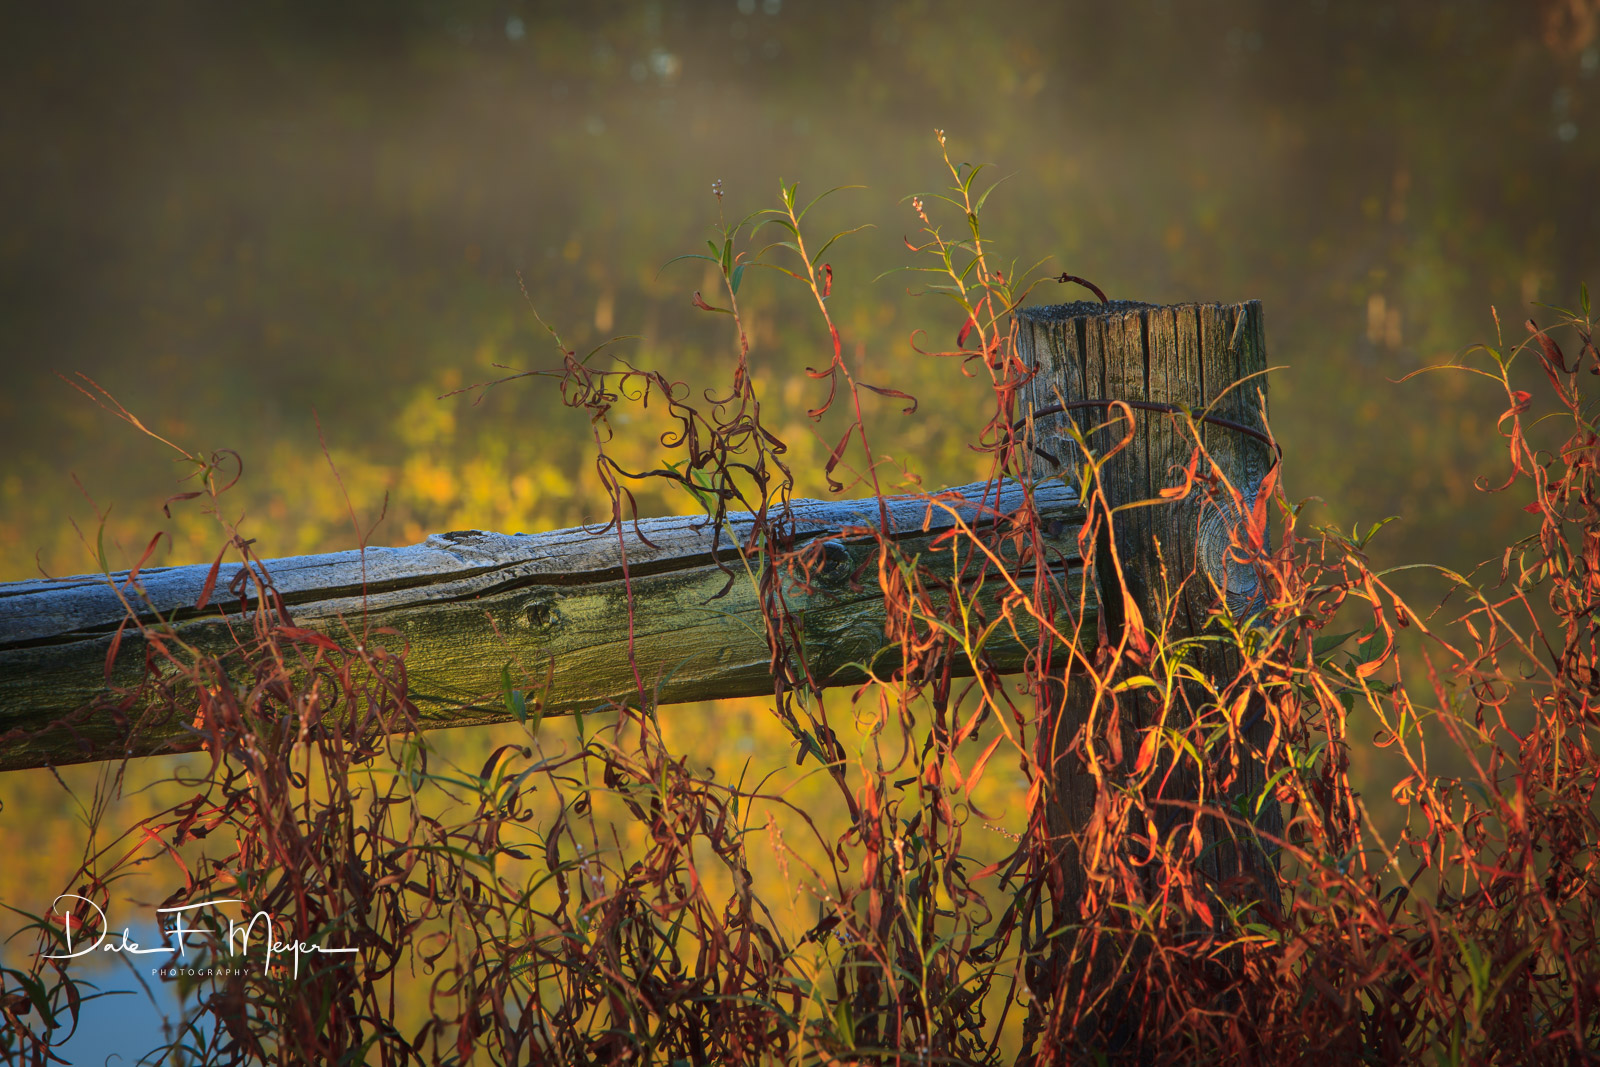 bog,fence post and weeds,fog,time gone by gallerie, photo